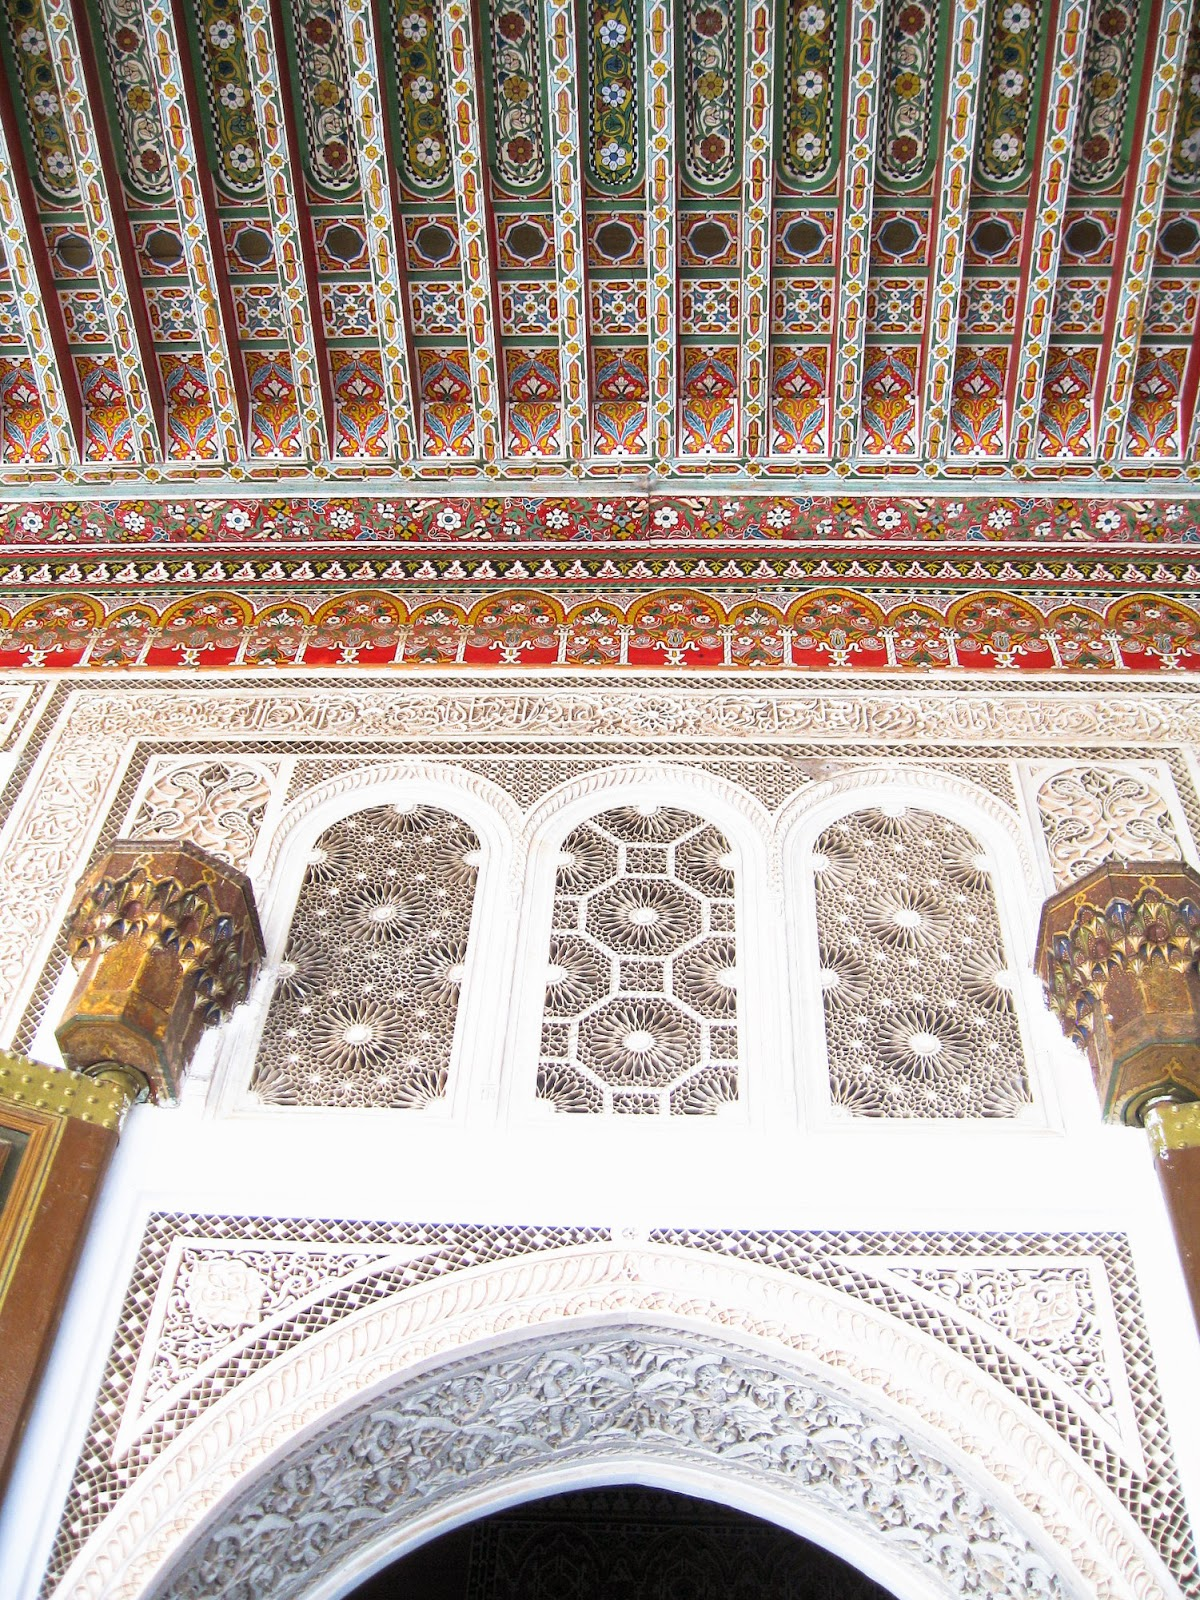 Top Marrakech tourist attractions: intricate details and handwork in decor of Bahia Palace